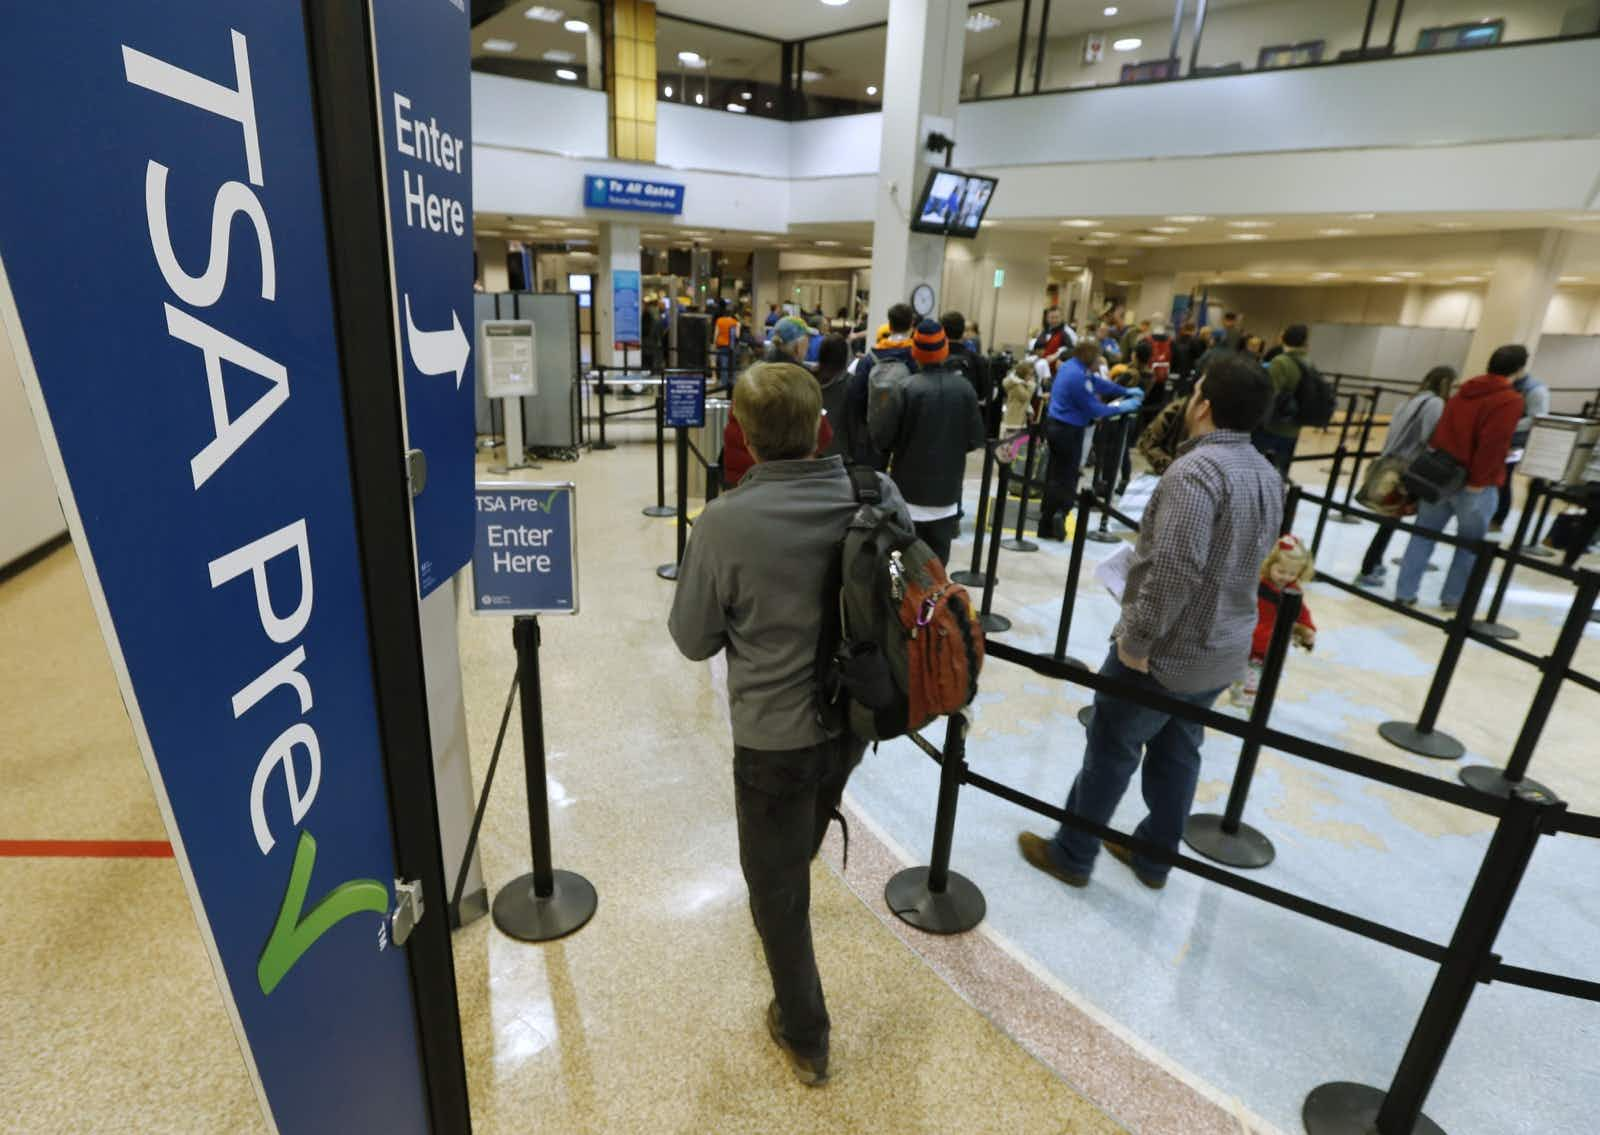 Passengers enter the TSA pre boarding line and make their way through a TSA security check point at the Salt Lake City International Airport; Equifax